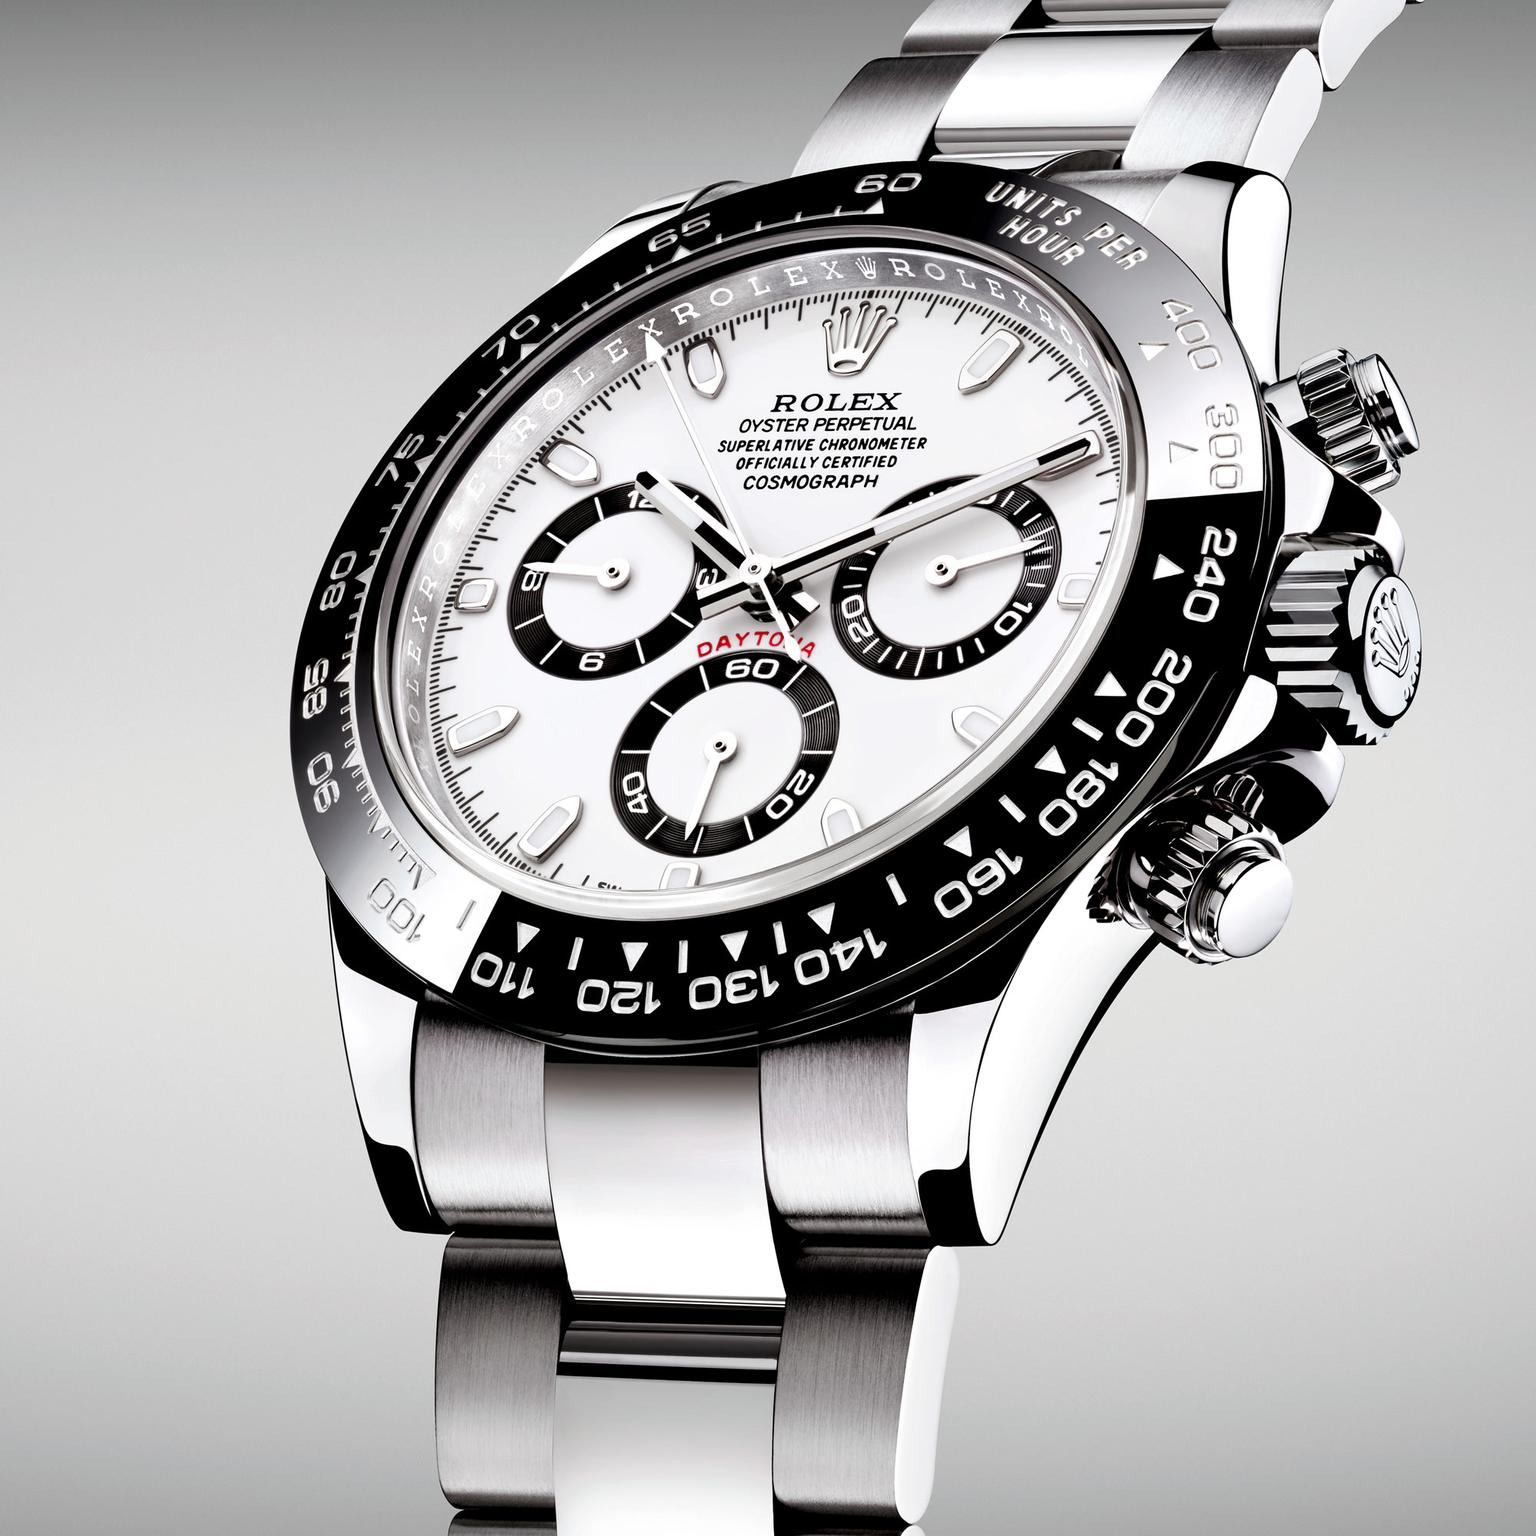 1536x1536 Cosmograph Daytona Watch In Stainless Steel Rolex